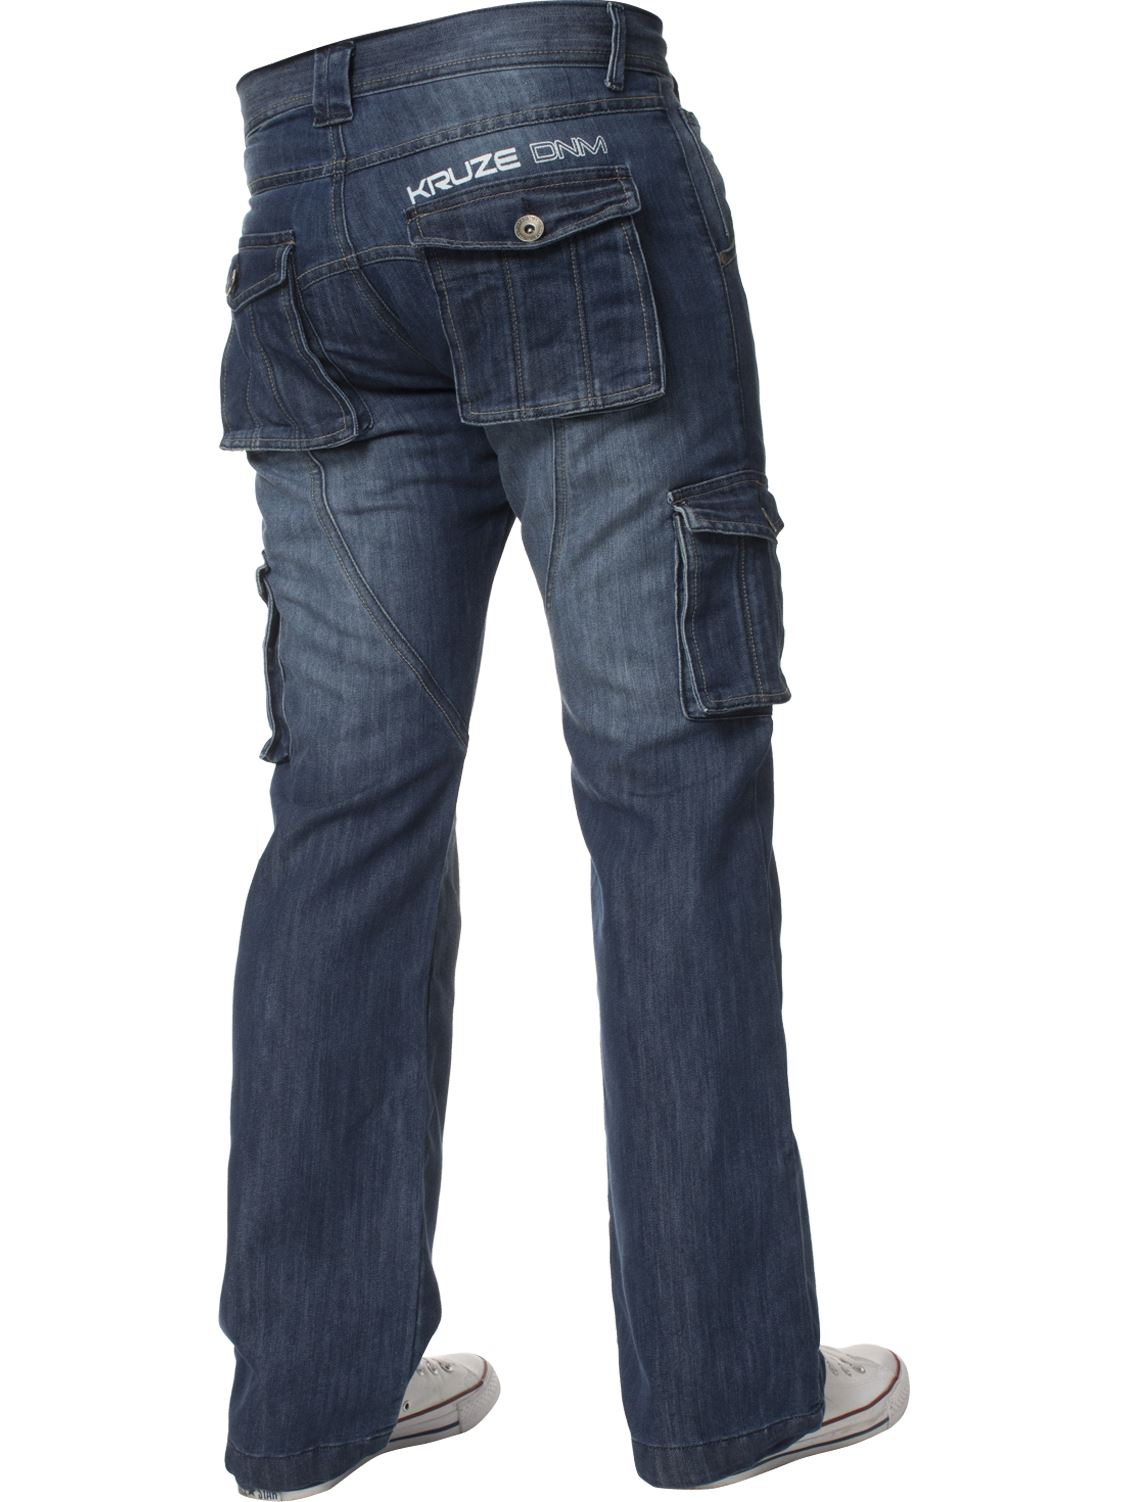 Mens-Cargo-Combat-Trousers-Jeans-Heavy-Duty-Work-Casual-Pants-Big-Tall-All-Sizes thumbnail 37